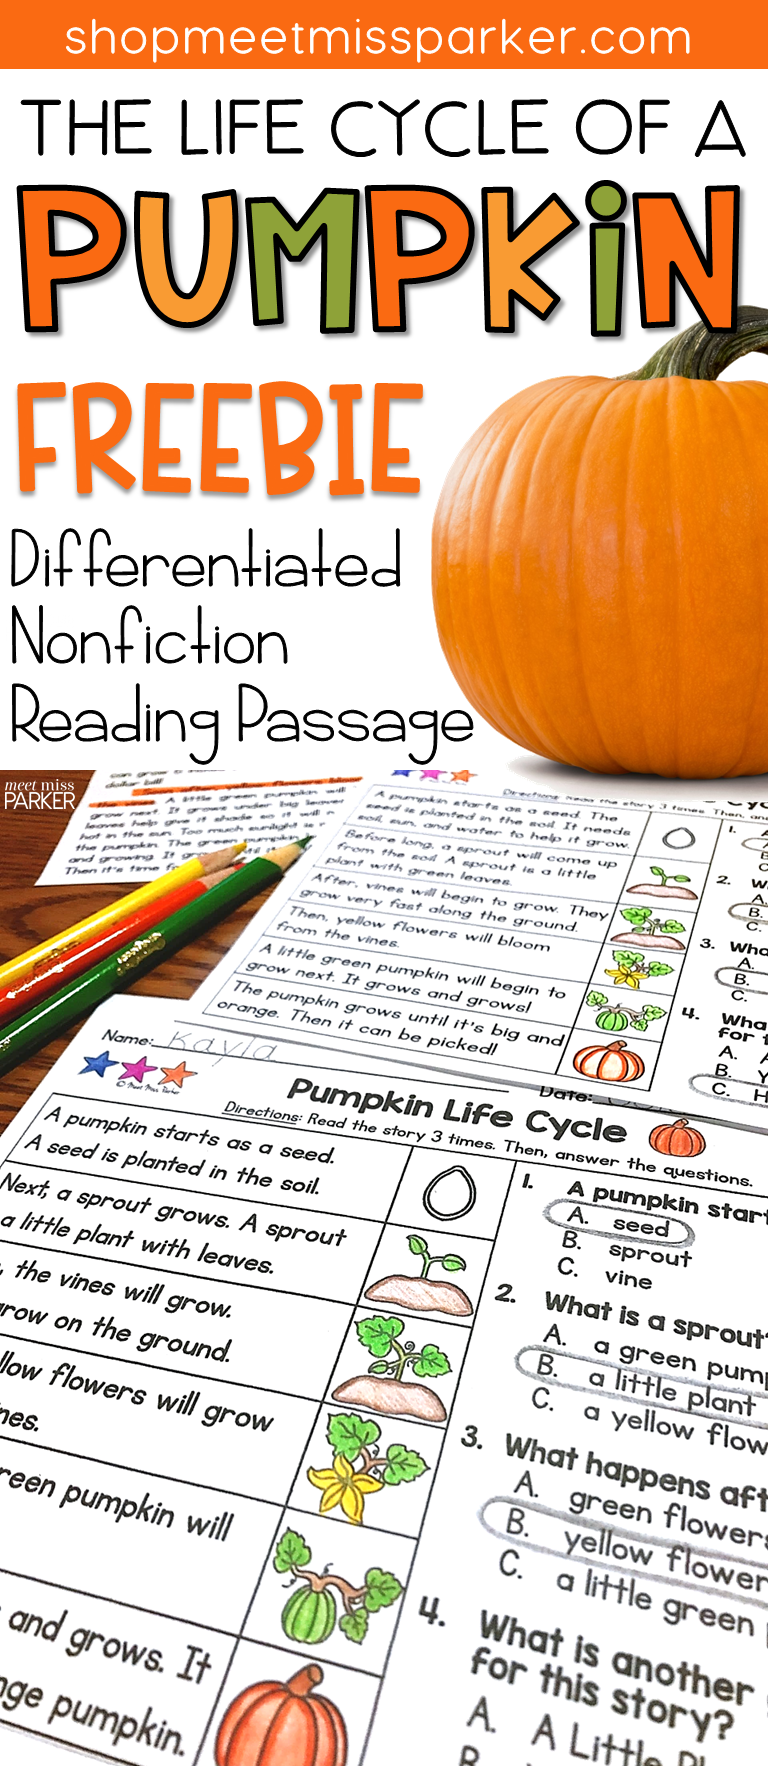 medium resolution of this pumpkin life cycle reading comprehension passage can be used for reading interventions literacy centers homework and guided reading groups in your